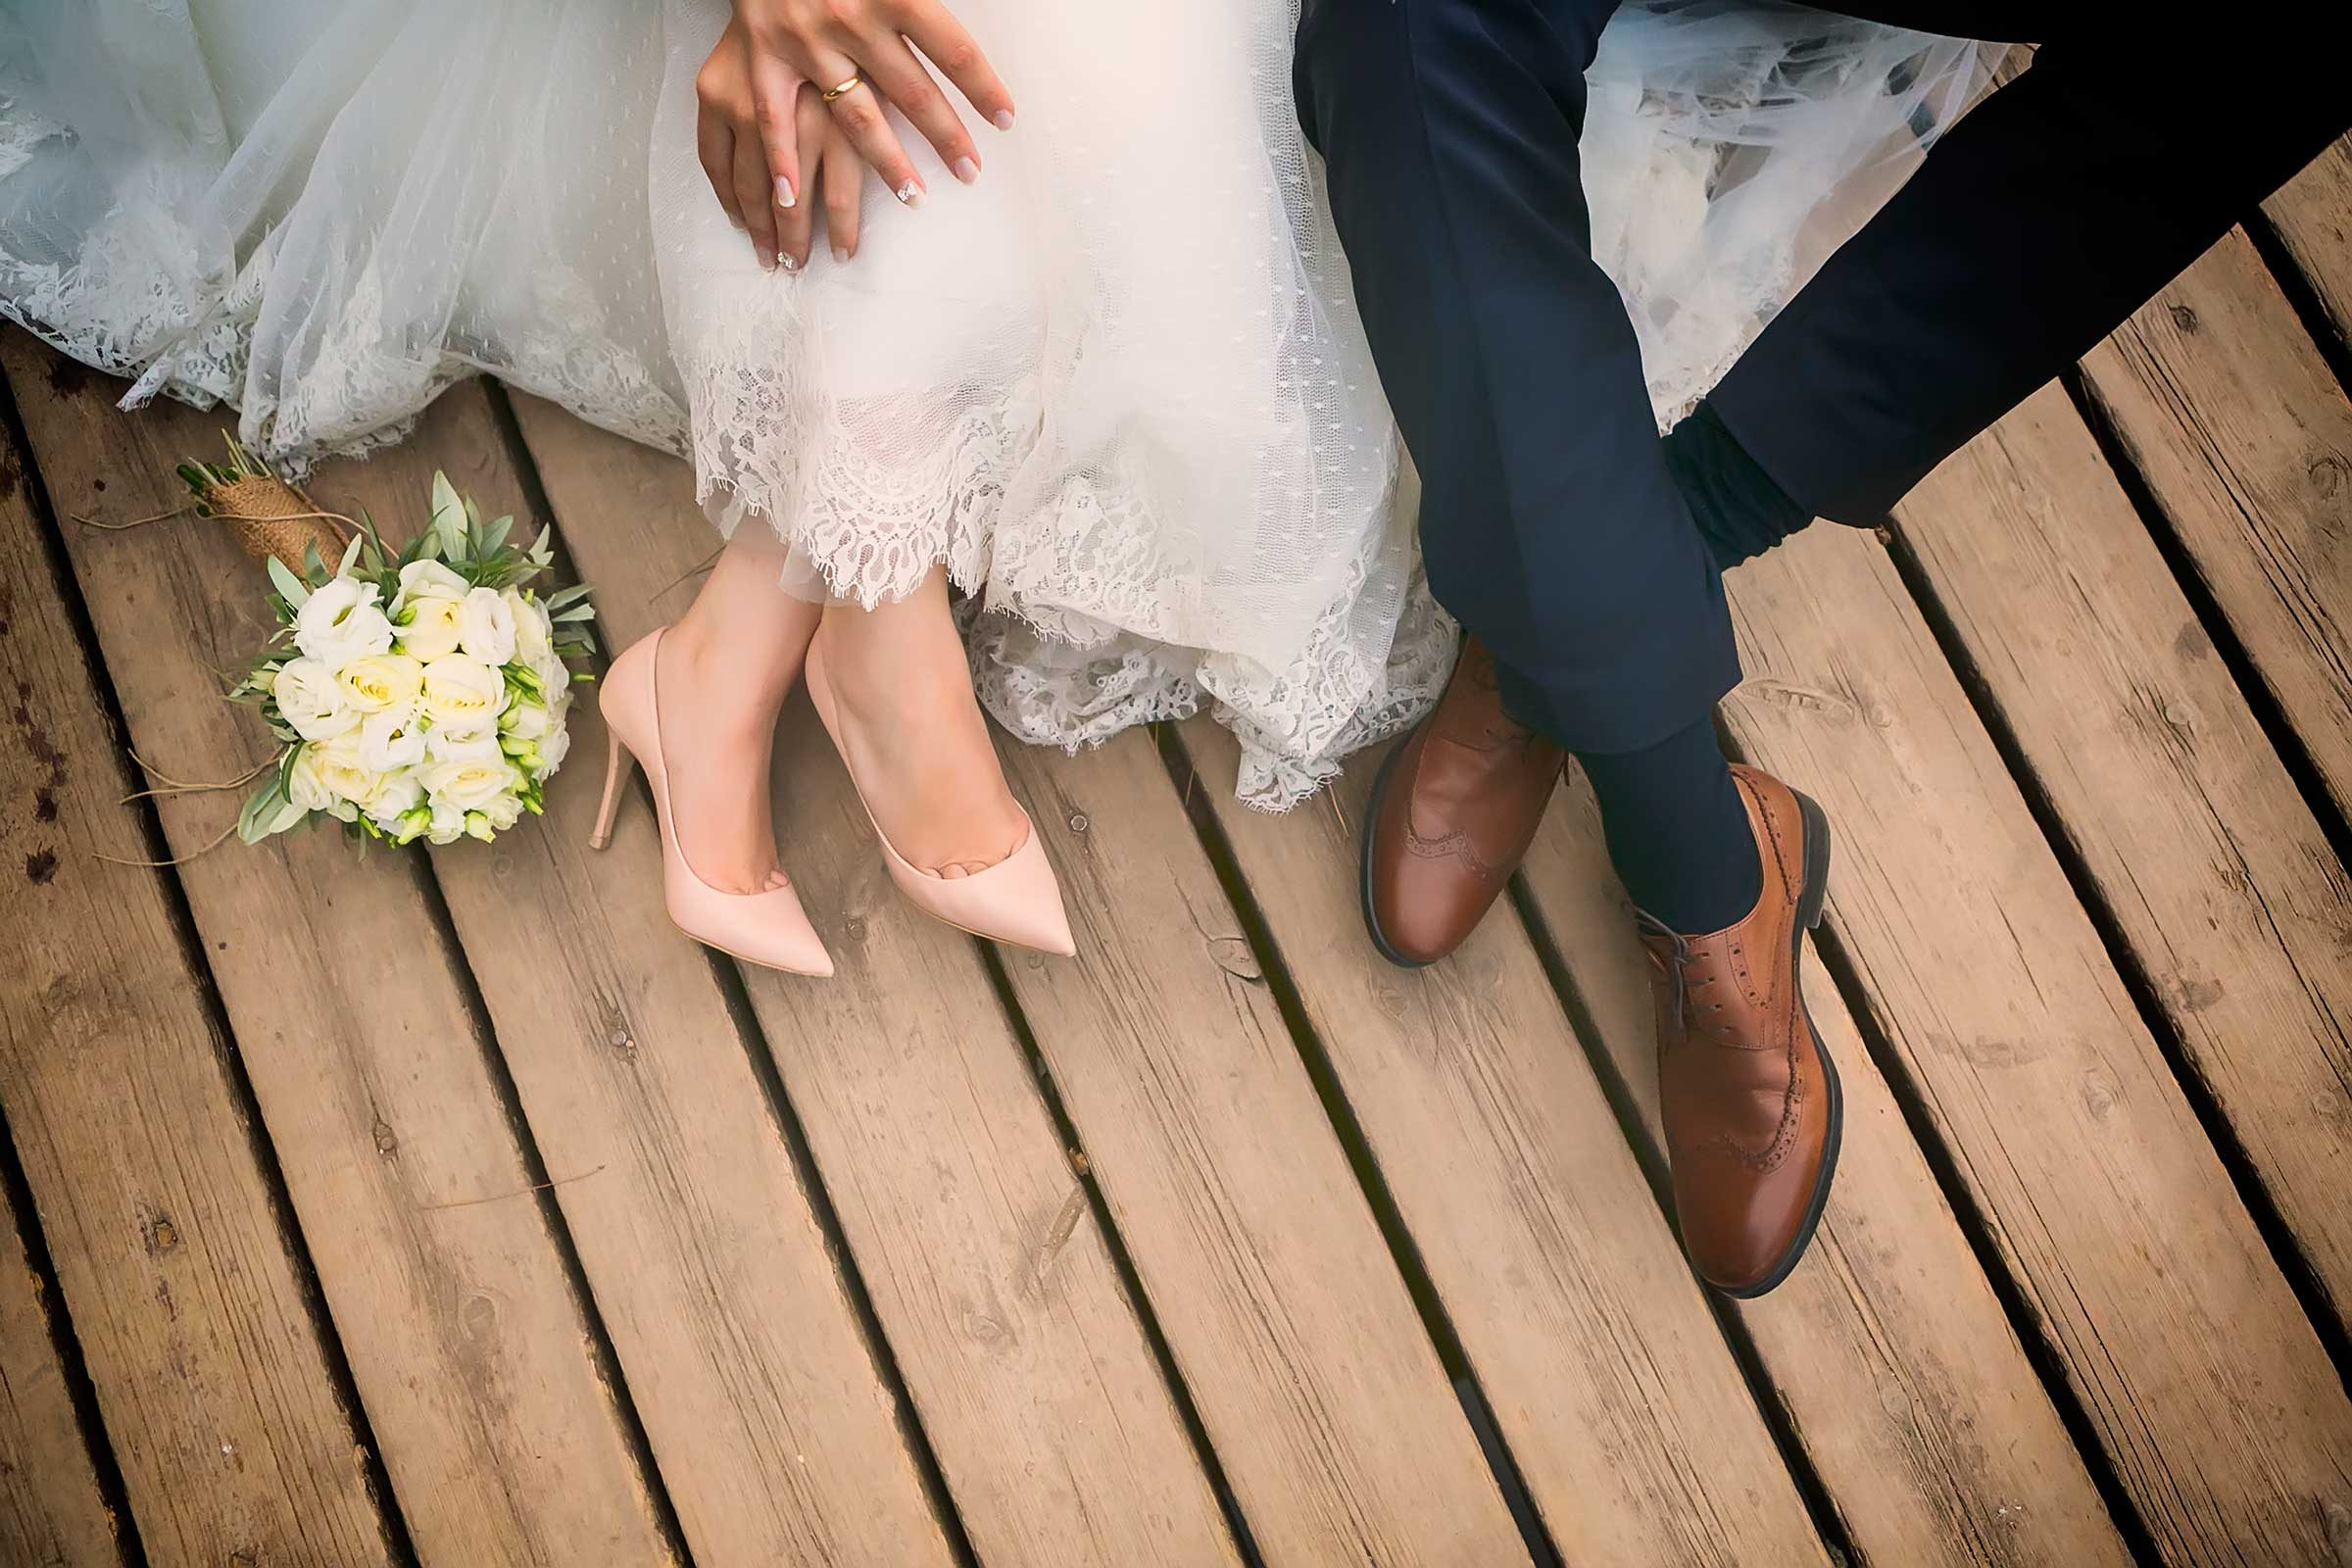 10_things_divorce_lawyer_married_know_marriage_tough_verve231